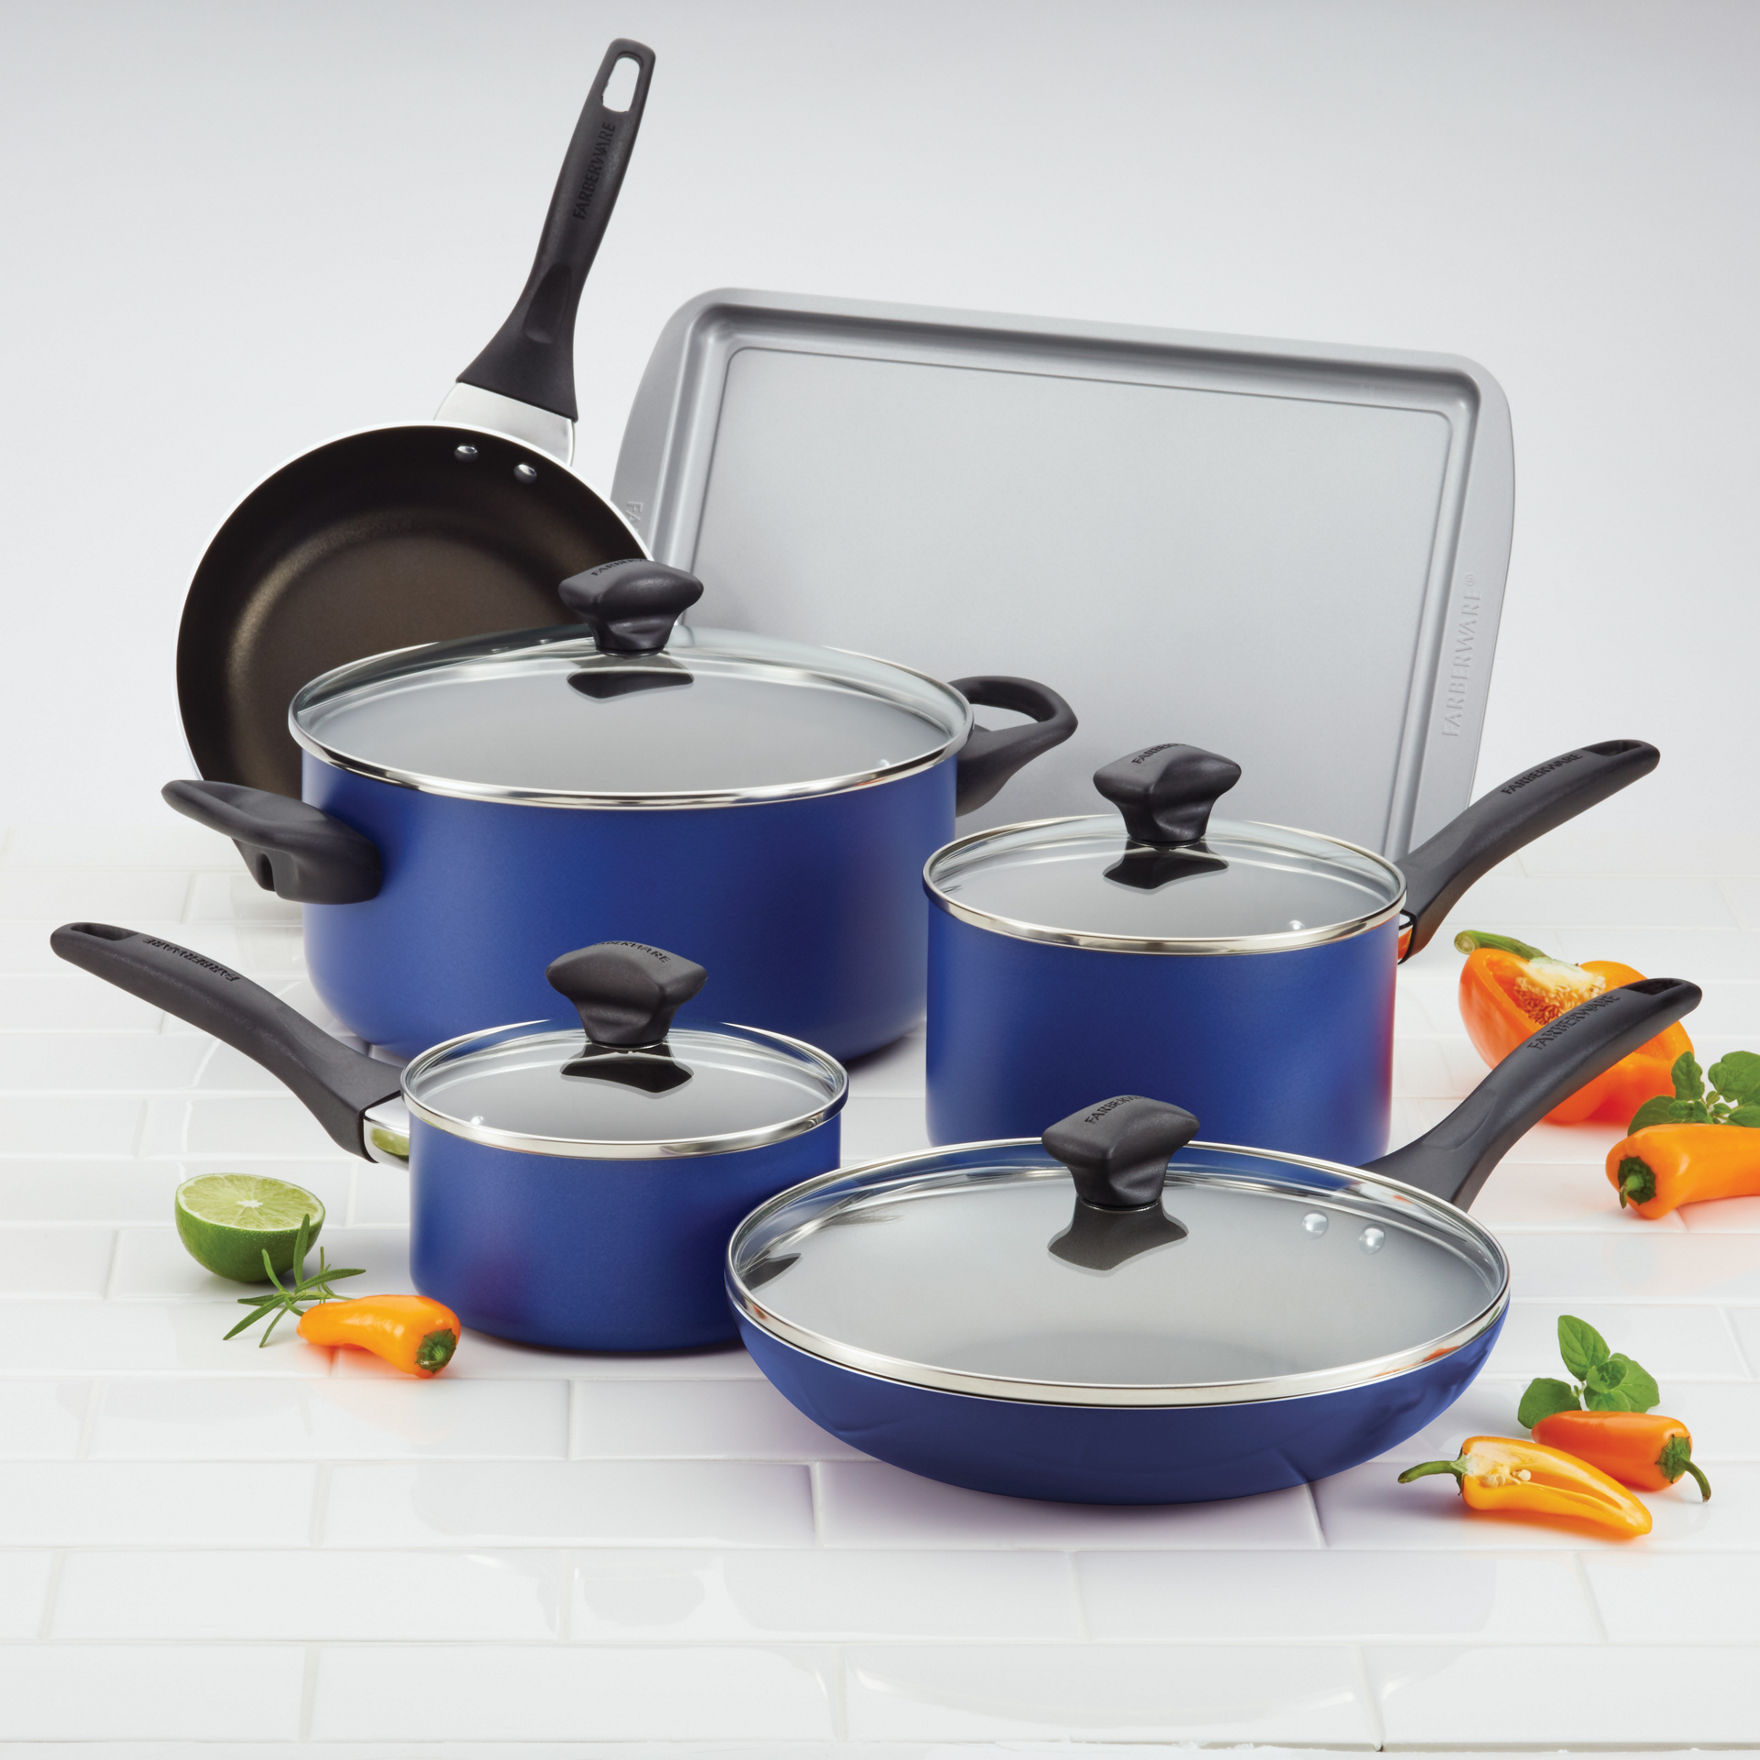 Farberware 15-pc. Nonstick Cookware Set | Stage Stores